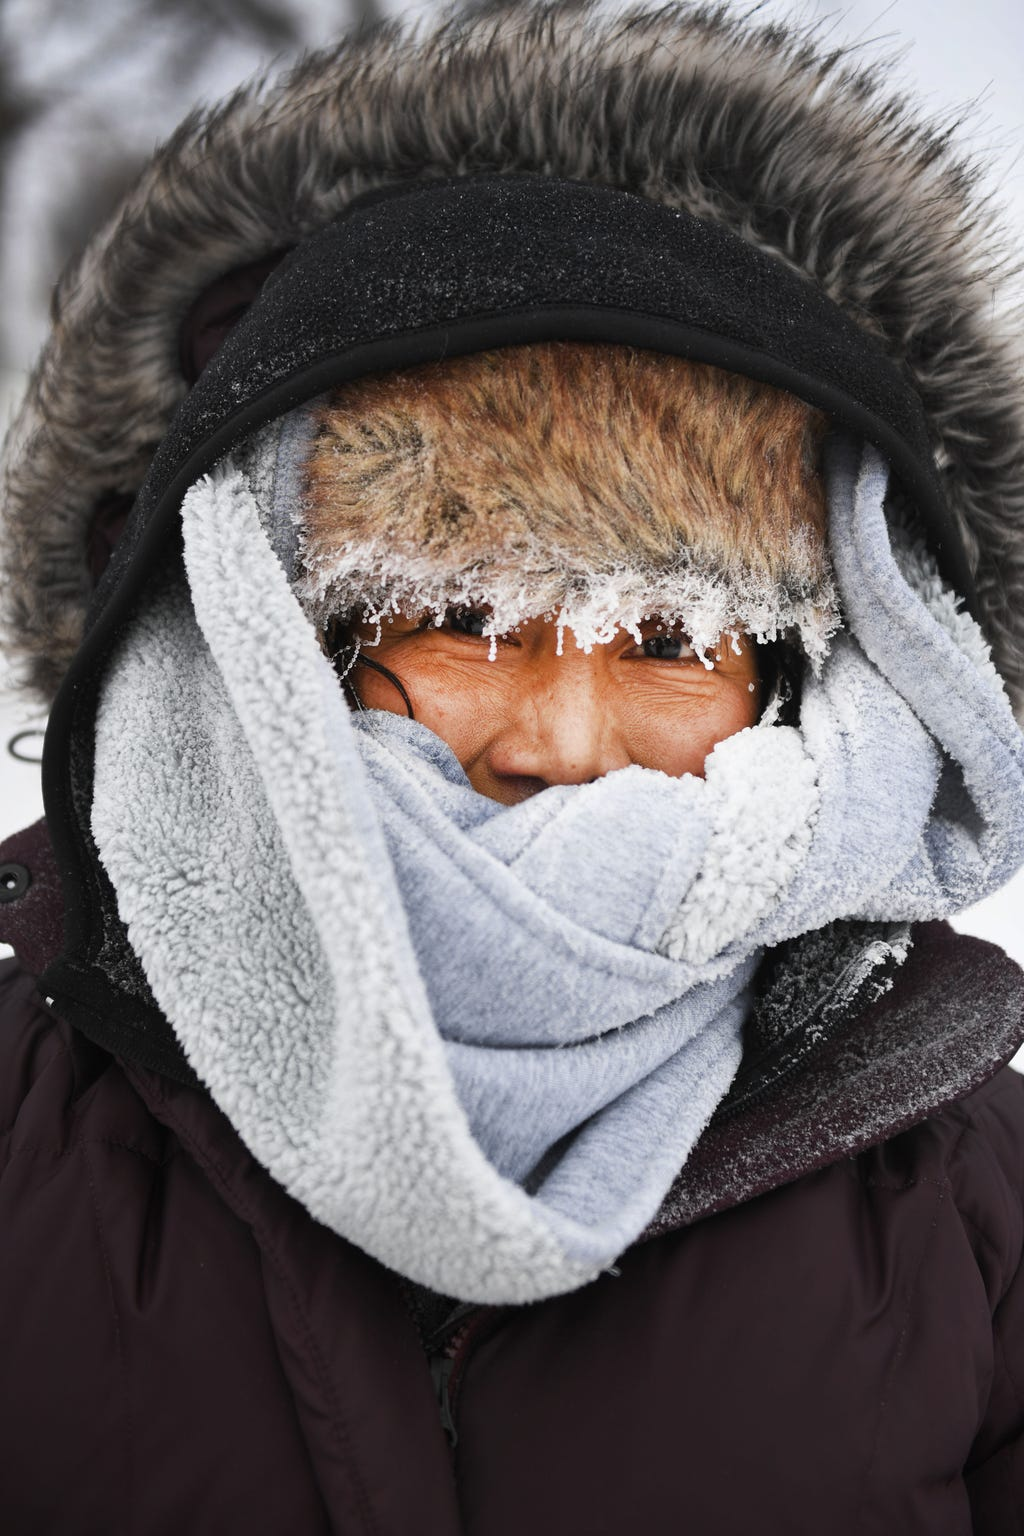 Sonia Zetino bundles up to shovel her driveway, Thursday, Feb. 7, 2019 in Sioux Falls. Sioux Falls went more than a month without the temperature rising above freezing in February and March, the longest stretch in at least 10 years.